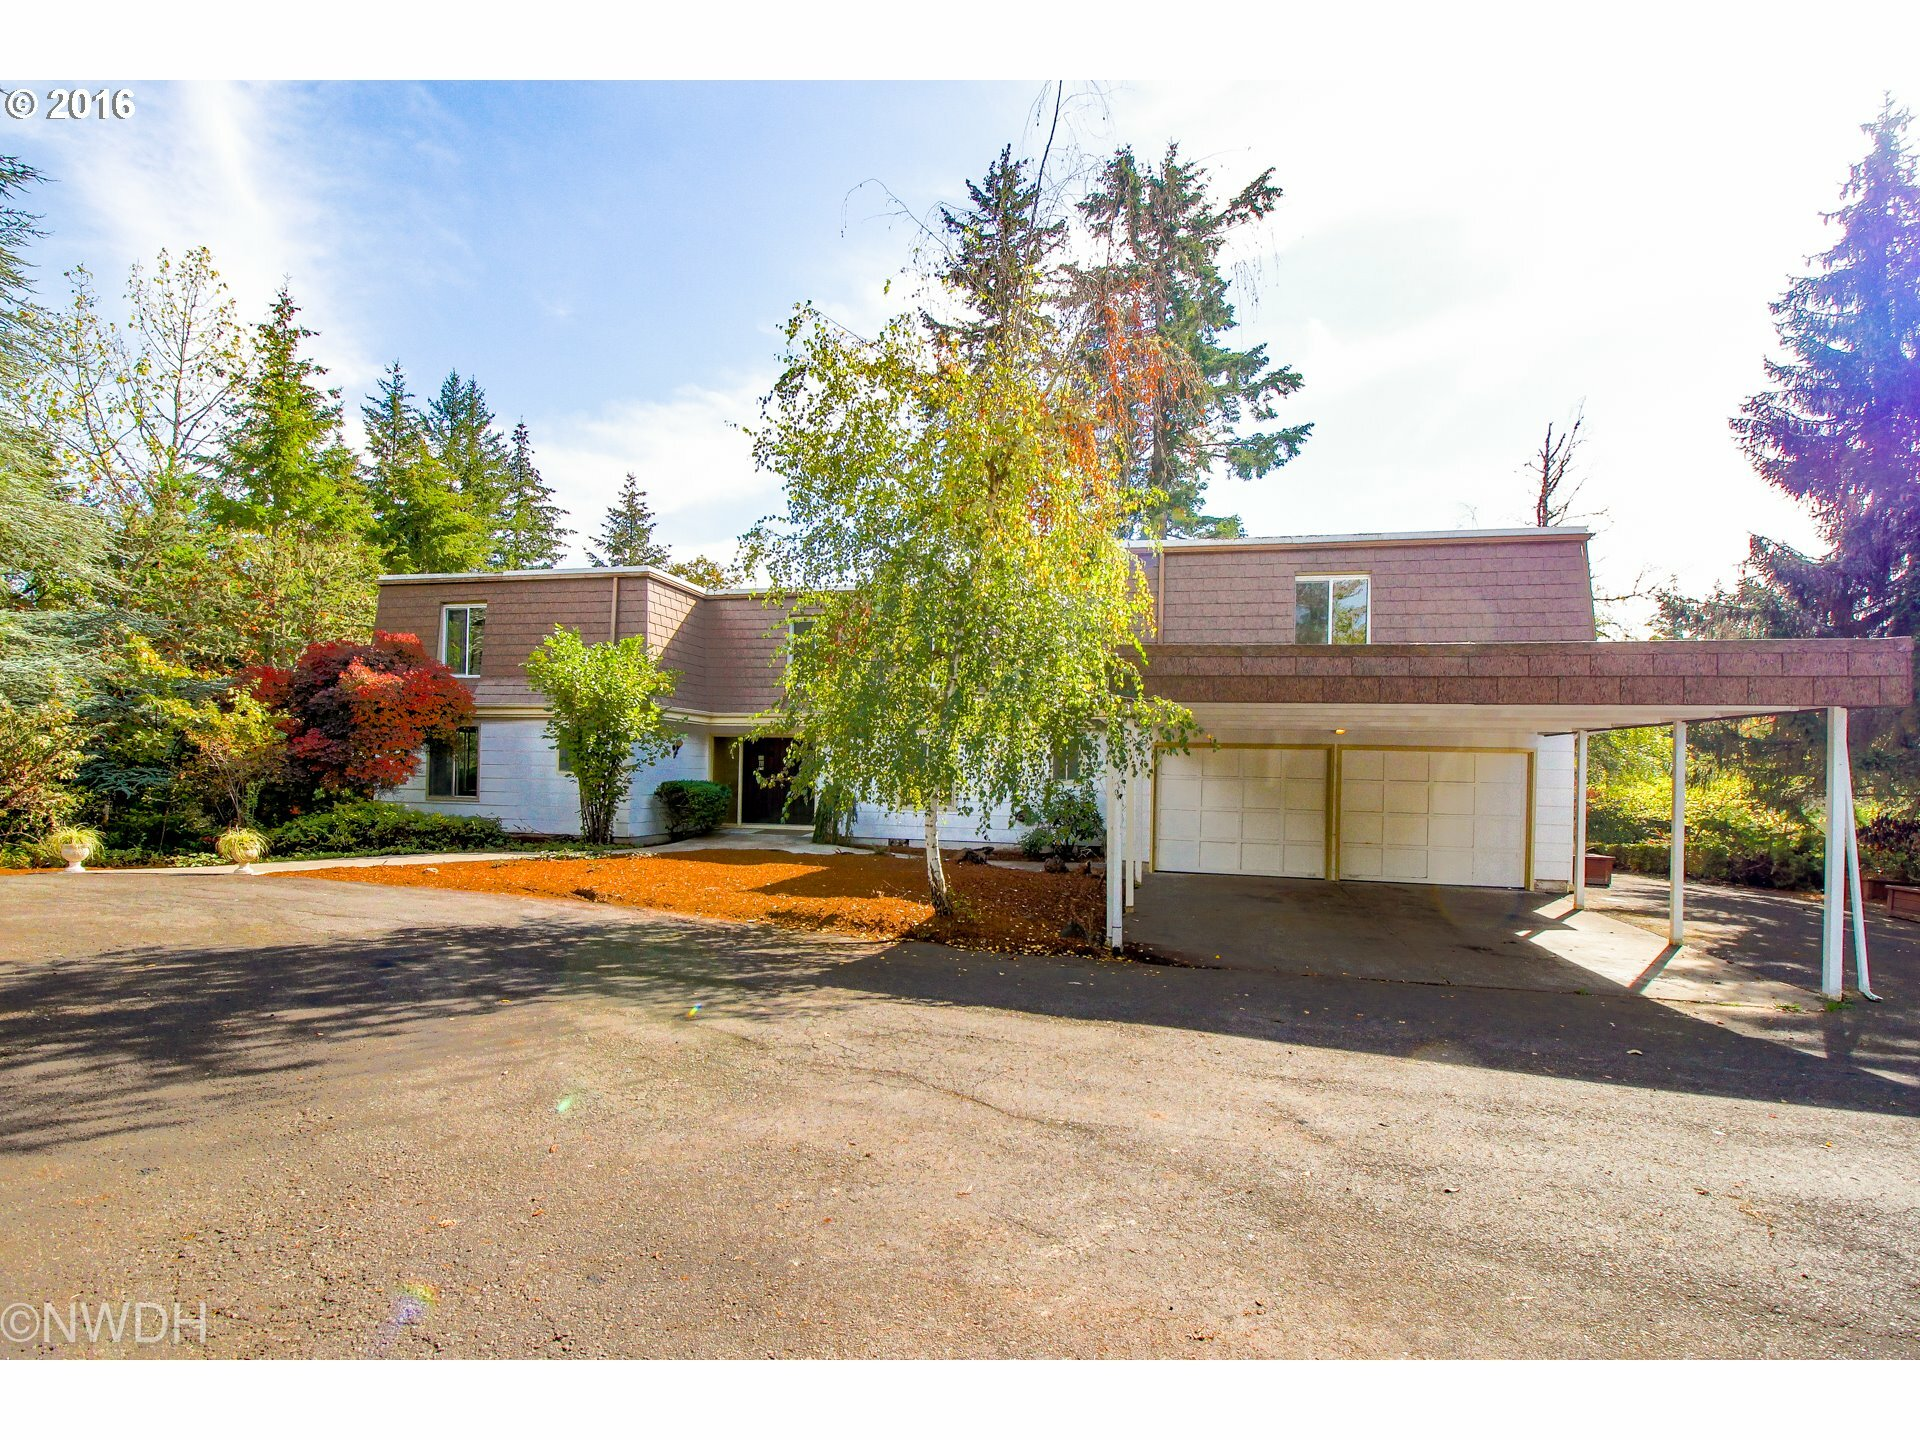 87436 Dukhobar Rd, Eugene, OR - USA (photo 1)